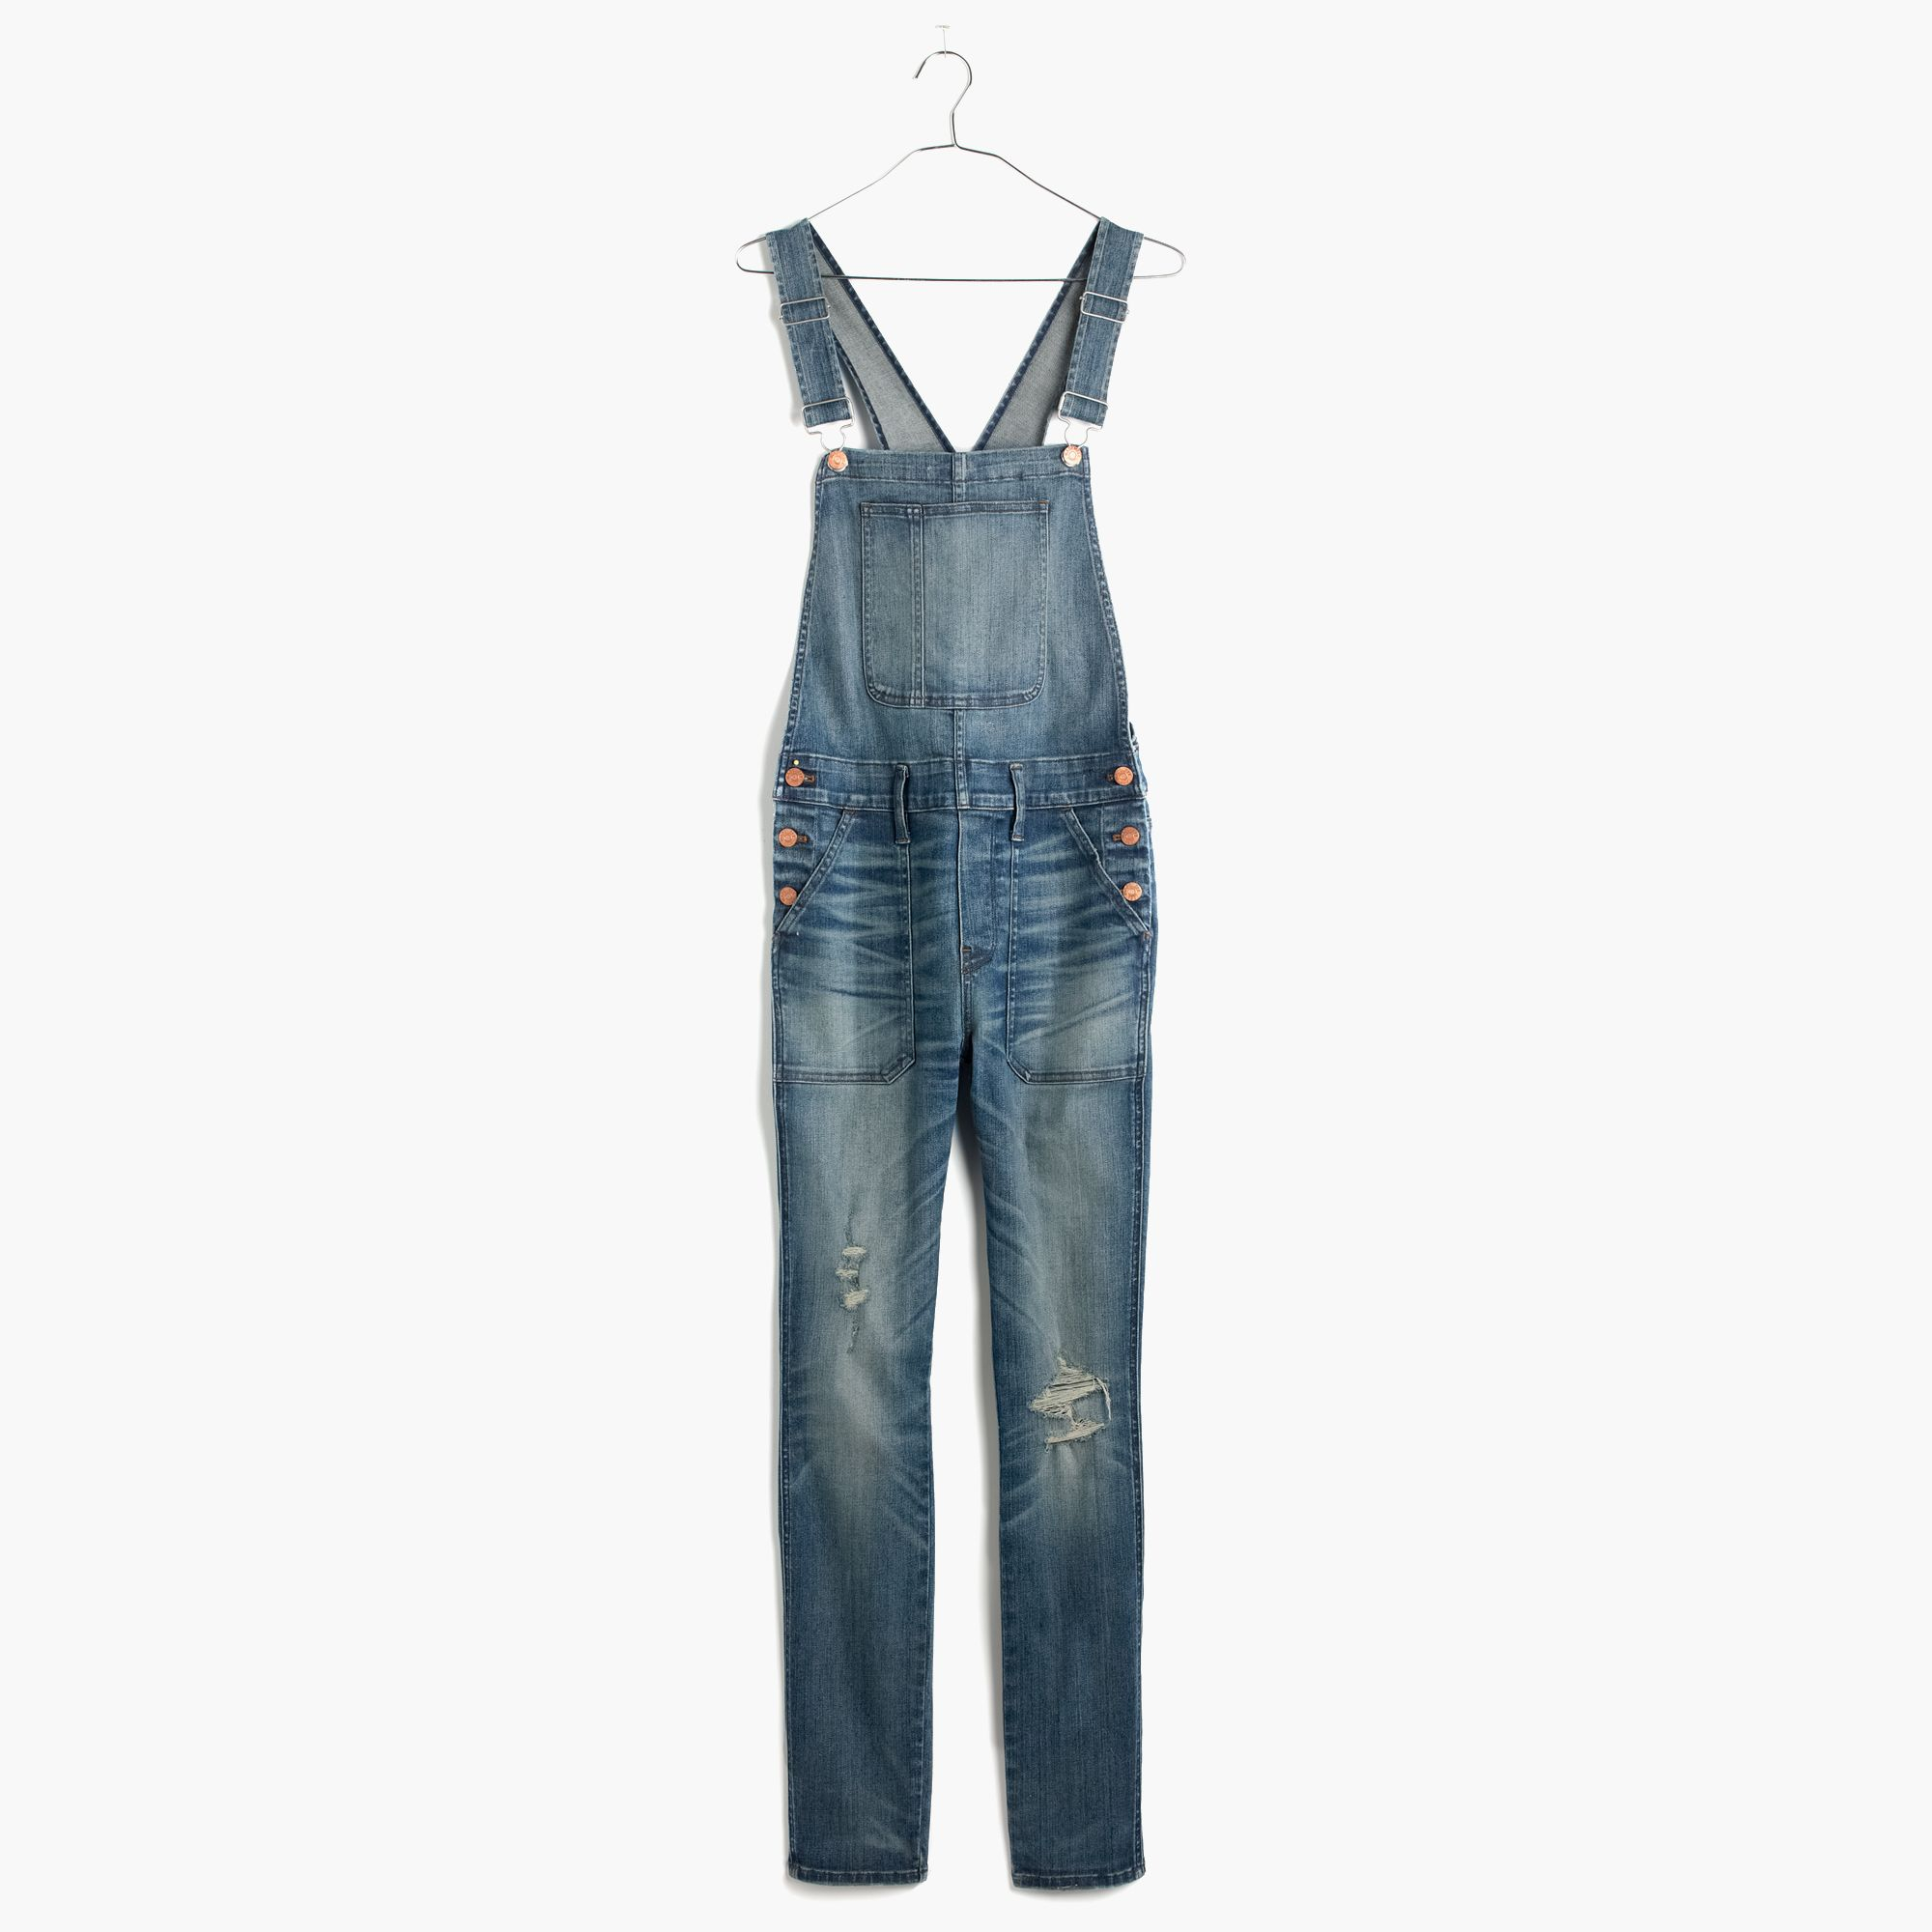 madewell-blue-skinny-overalls-in-adrian-wash-product-1-27372954-0-315179909-normal.jpeg